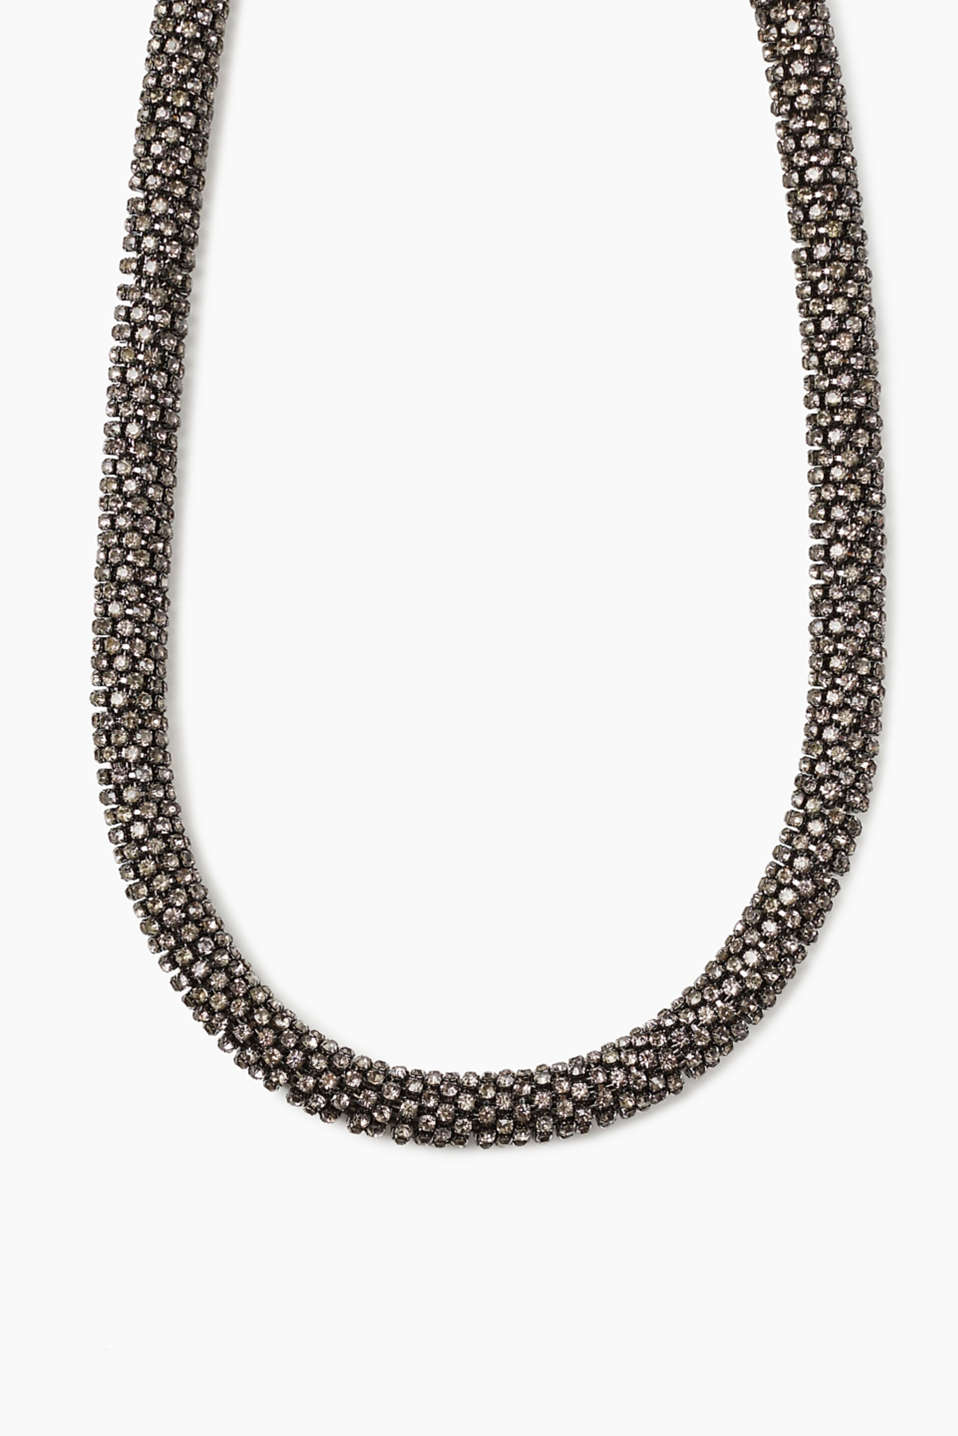 Collier tendance gris à strass